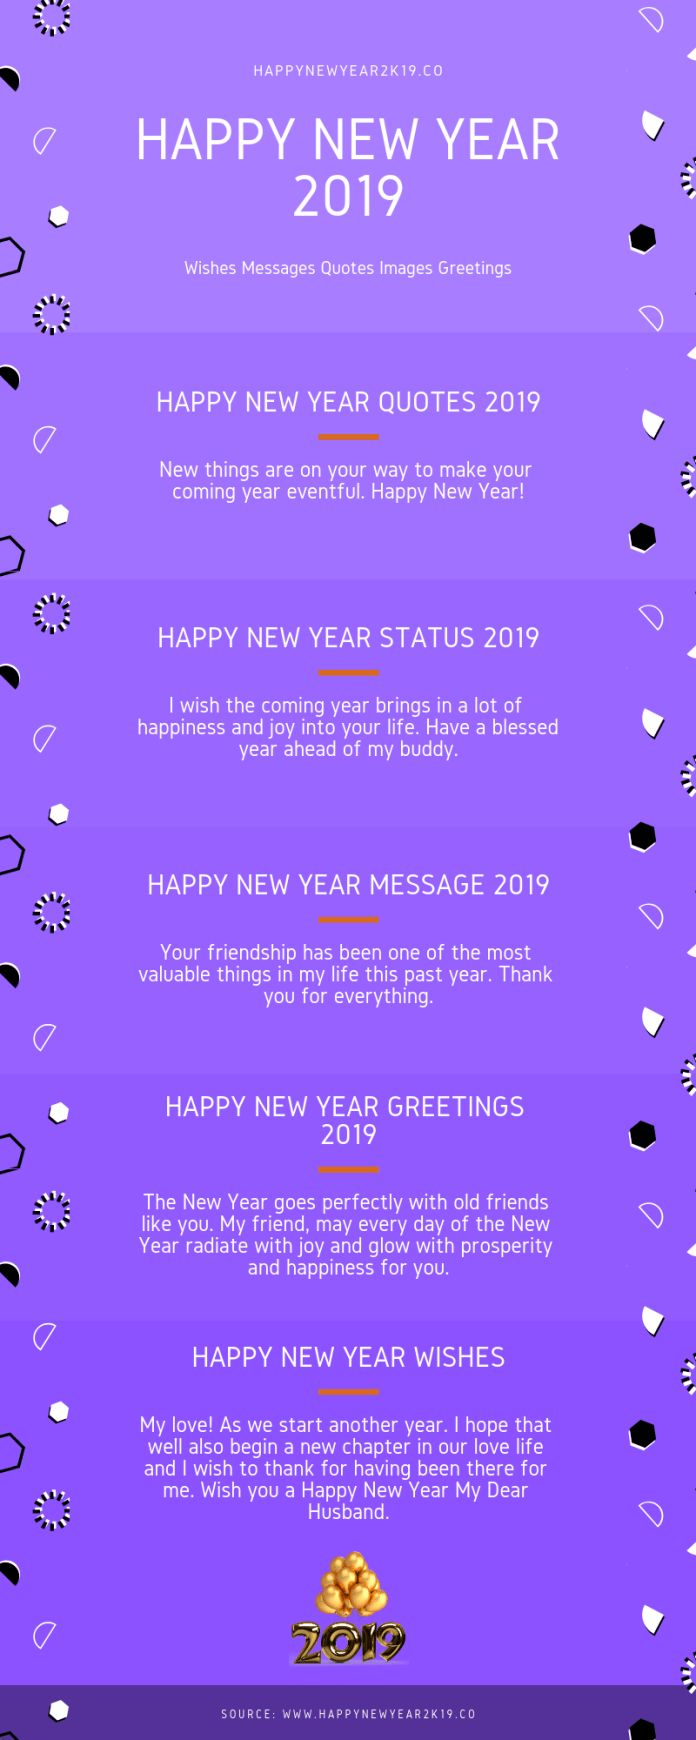 New Years Day Quotes 2019: Happy New Year 2019 : Happy New Year 2019 Quotes, Messages